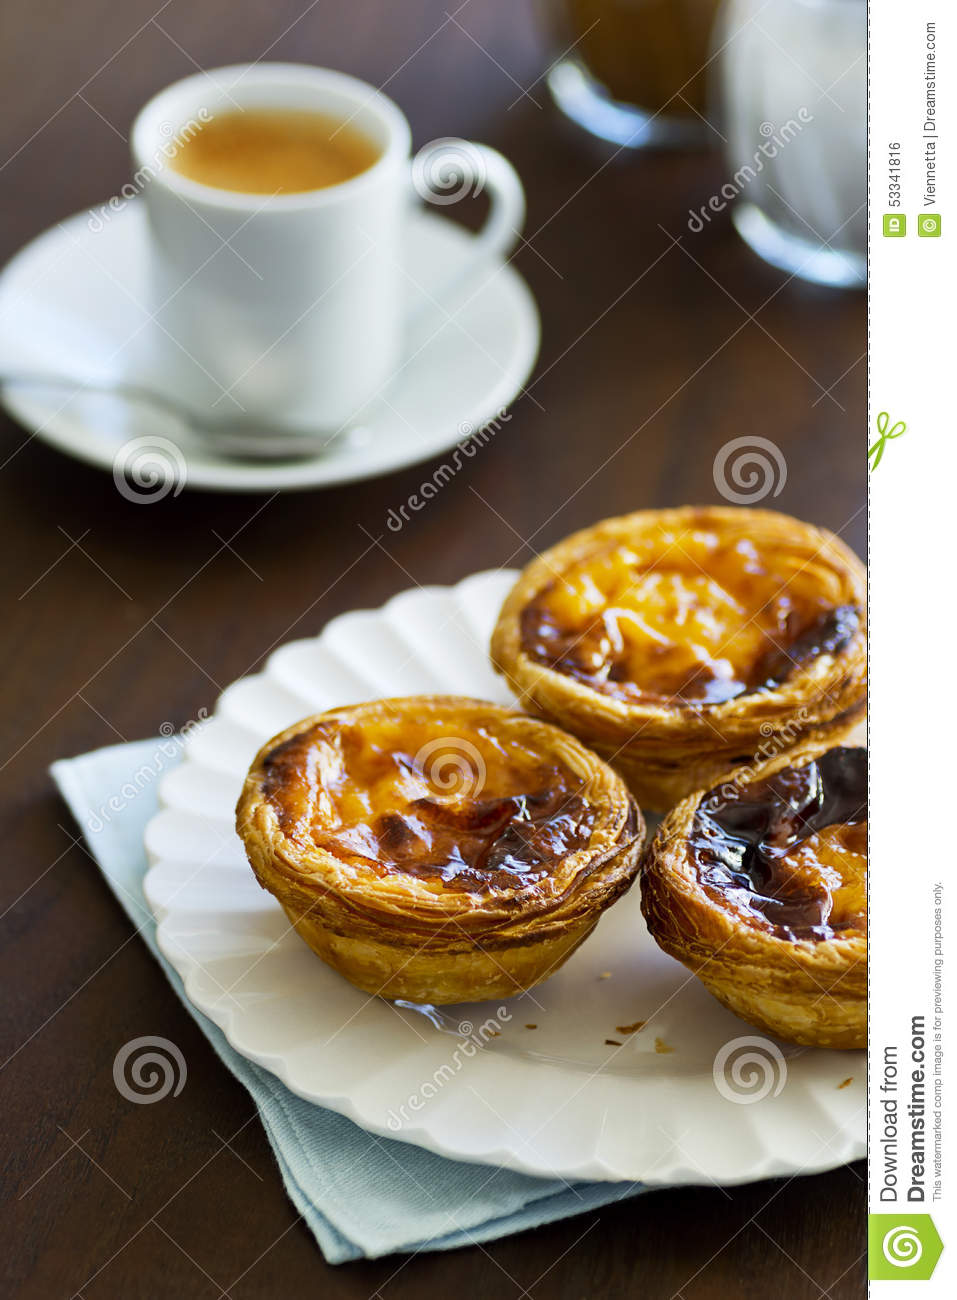 pasteis de nata with espresso in a cafe stock photo. Black Bedroom Furniture Sets. Home Design Ideas